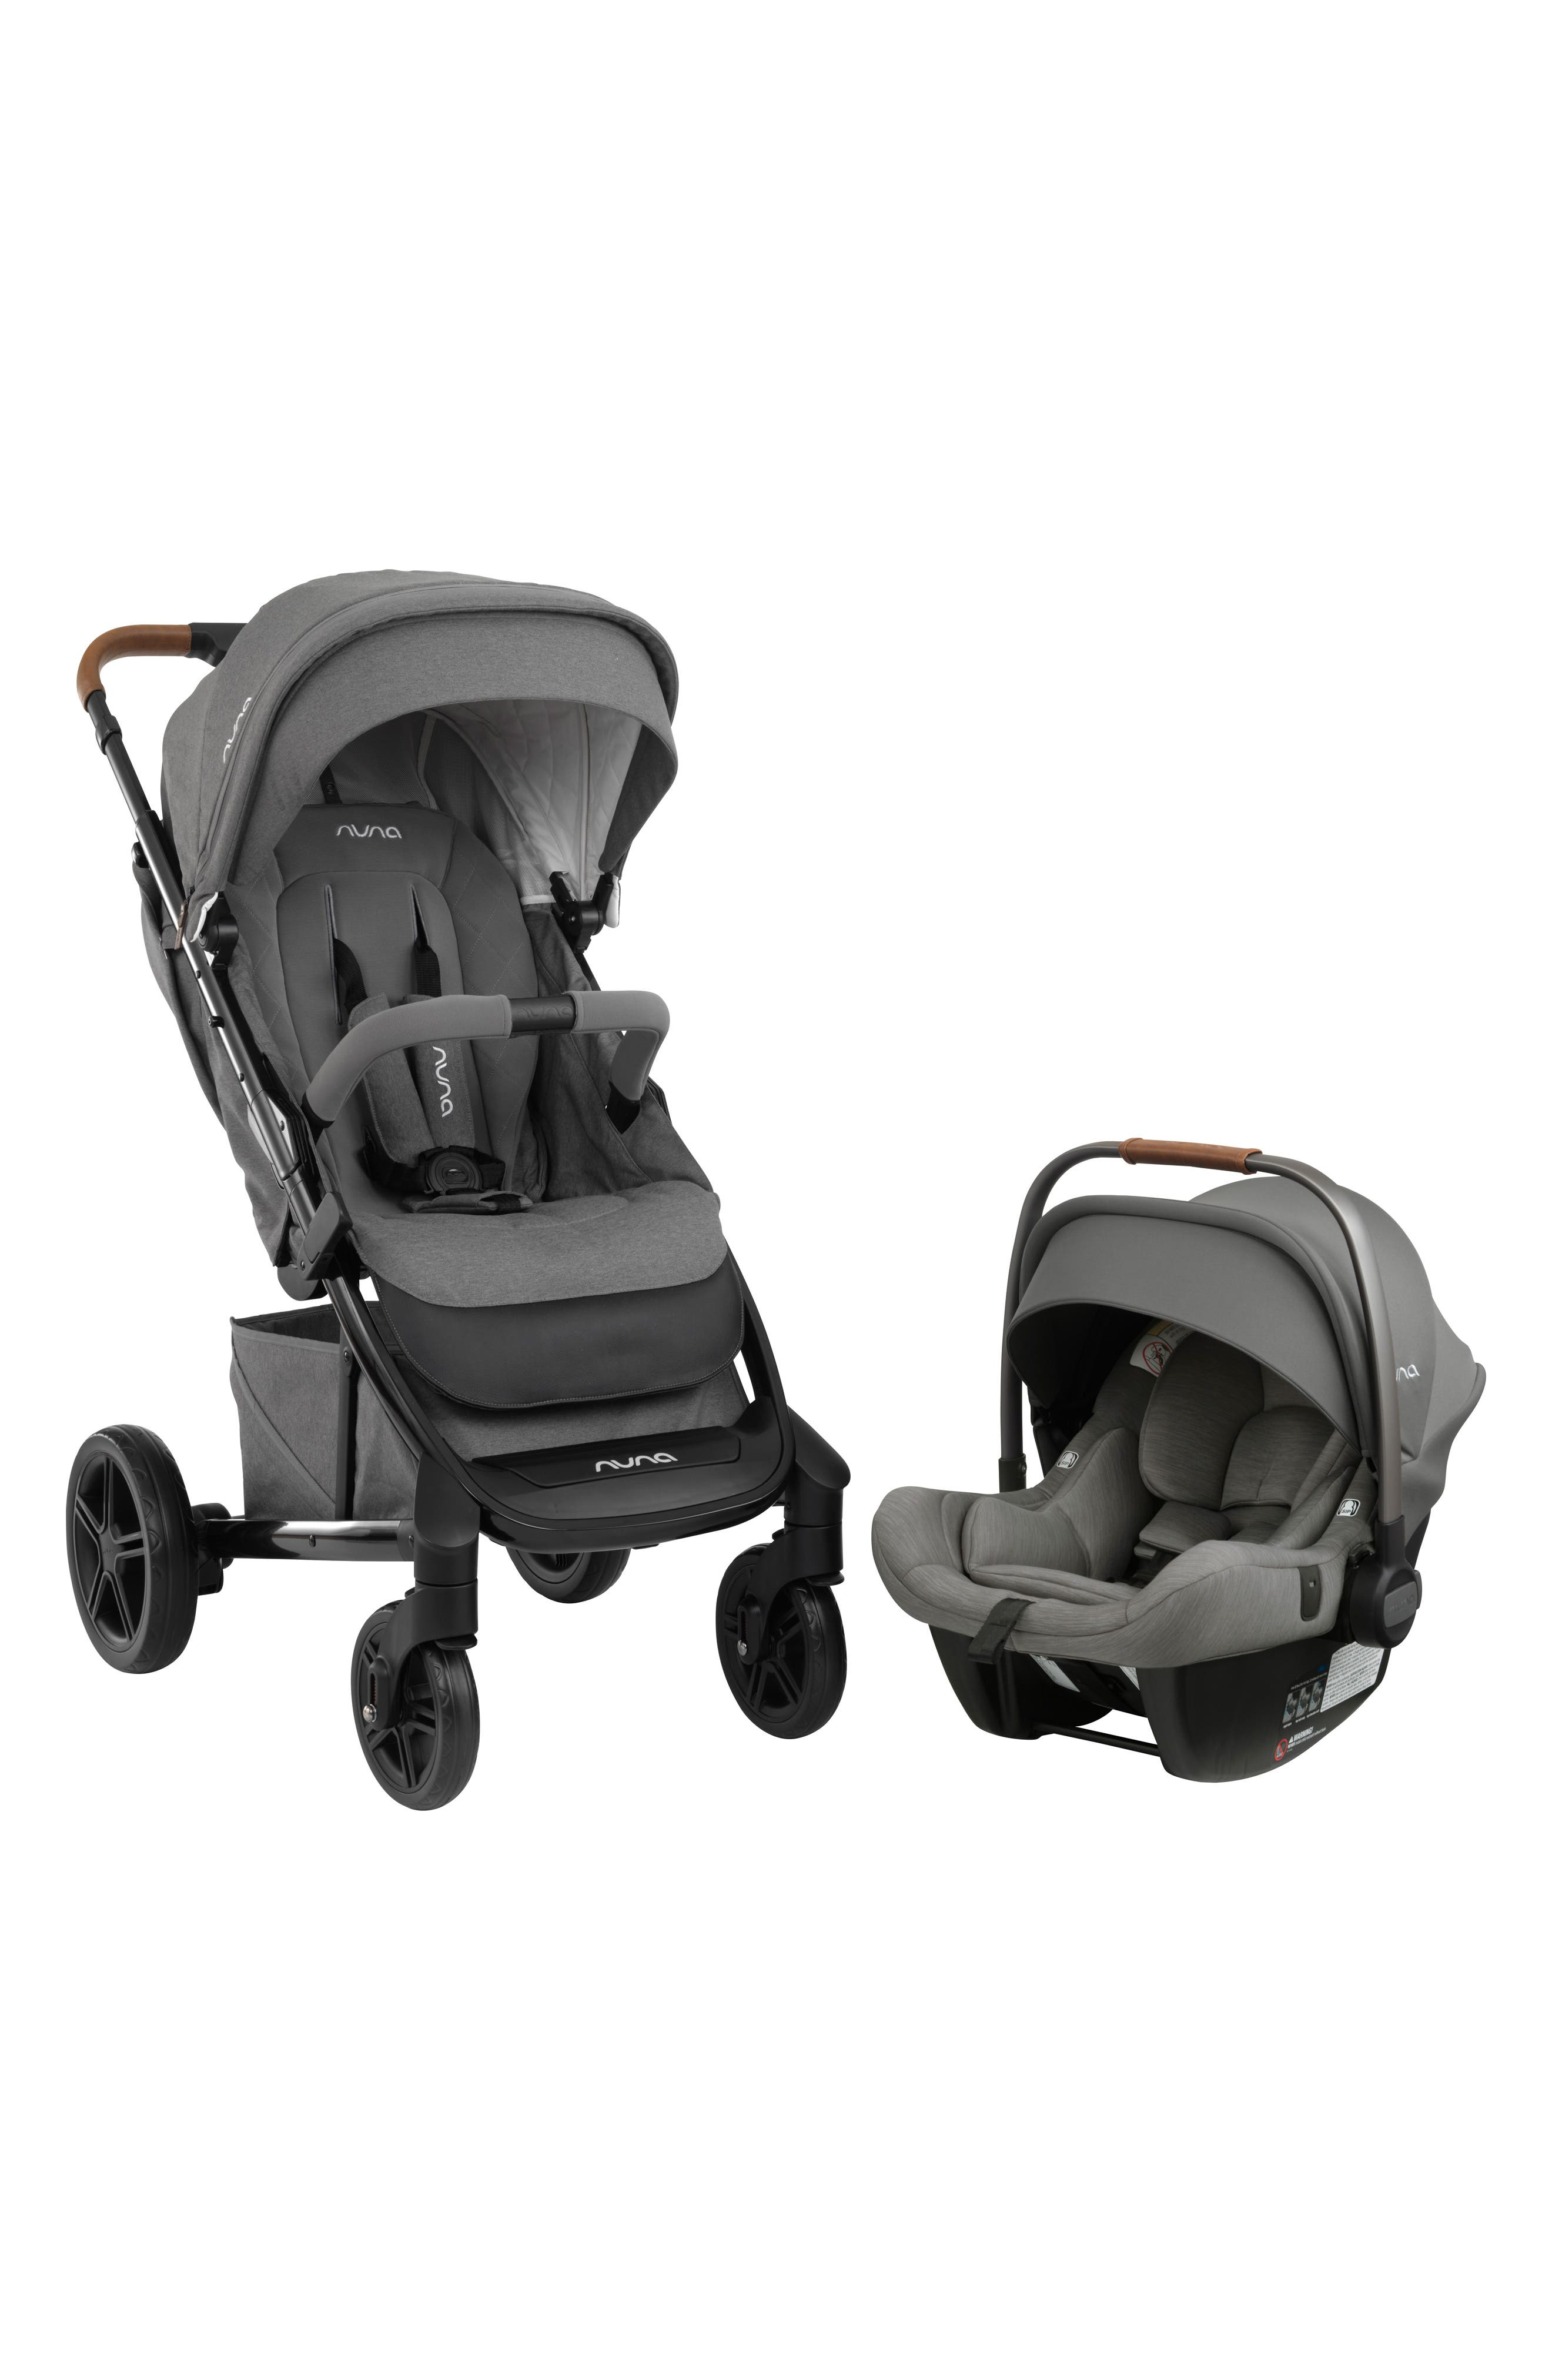 2019 TAVO<sup>™</sup> Stroller & PIPA<sup>™</sup> Lite LX Car Seat Travel System, Main, color, GRANITE